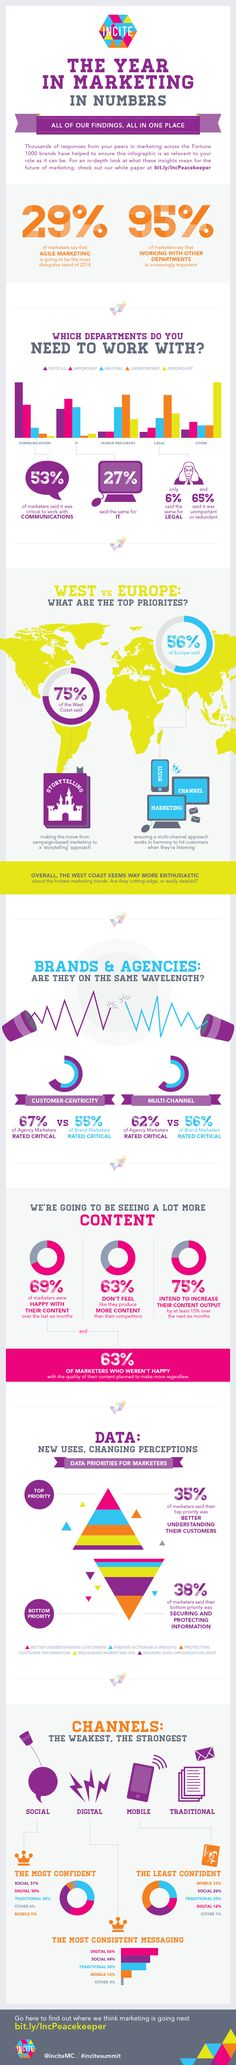 The Year in Marketing in Numbers #infographic #Marketing